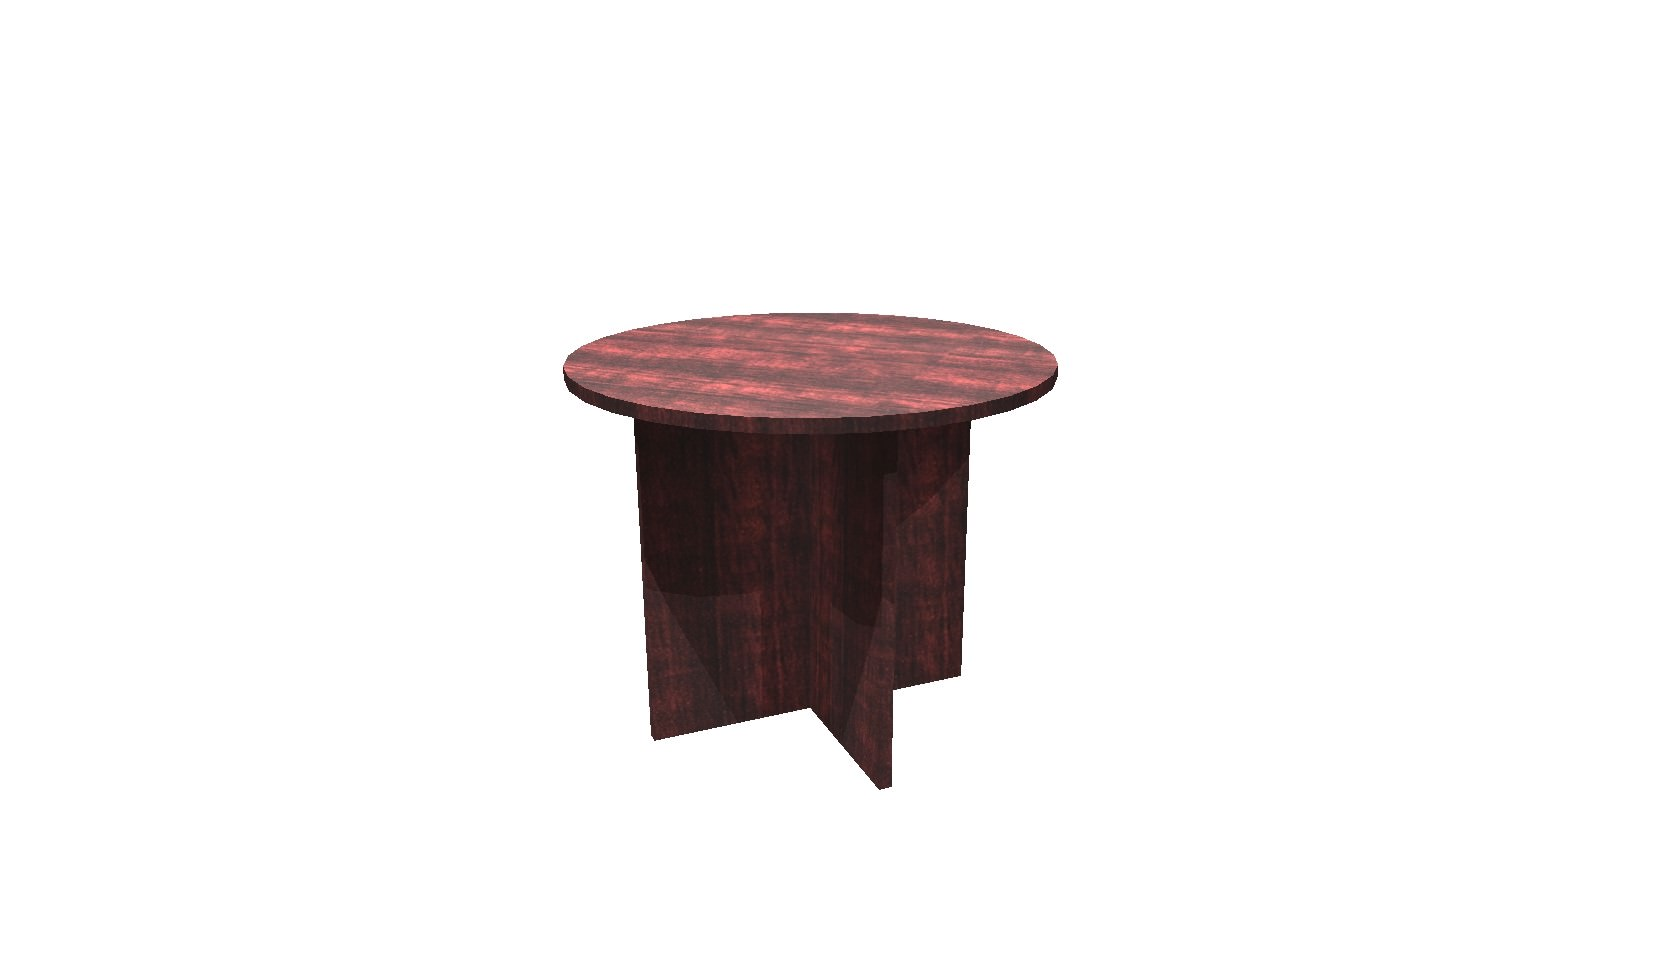 Inch Mahogany Round Conference Table - 36 inch round conference table